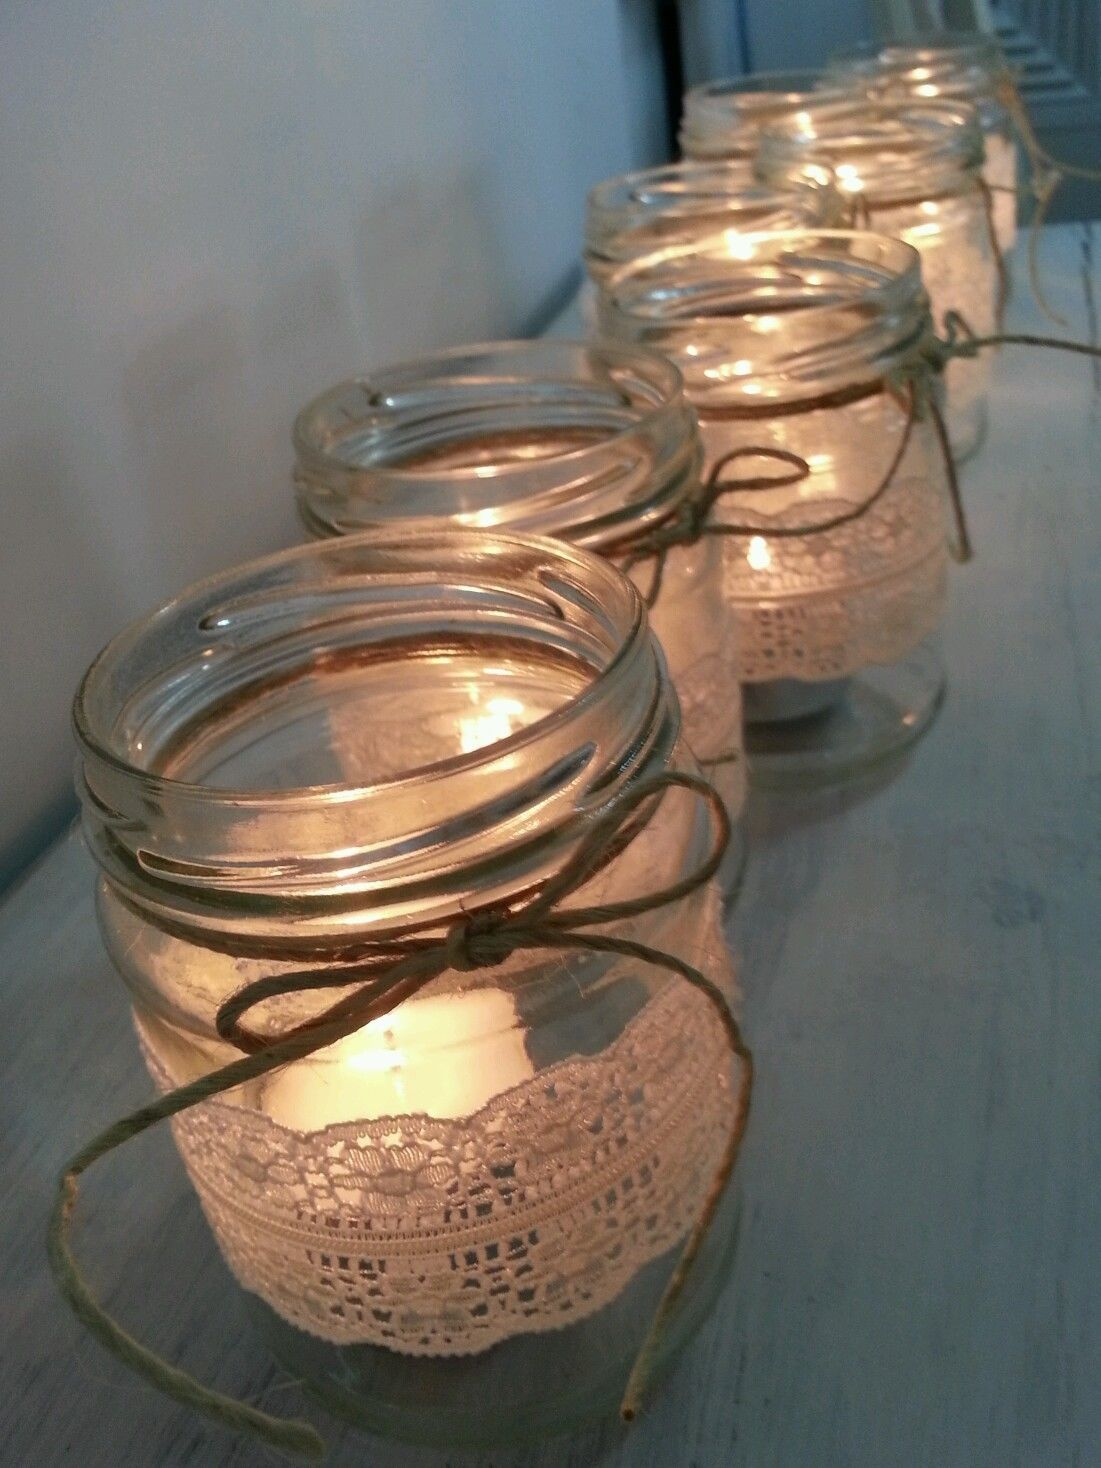 10 rustic lace glass jar candle holder wedding christmas decoration 10 rustic lace glass jar candle holder wedding christmas decoration ebay junglespirit Images